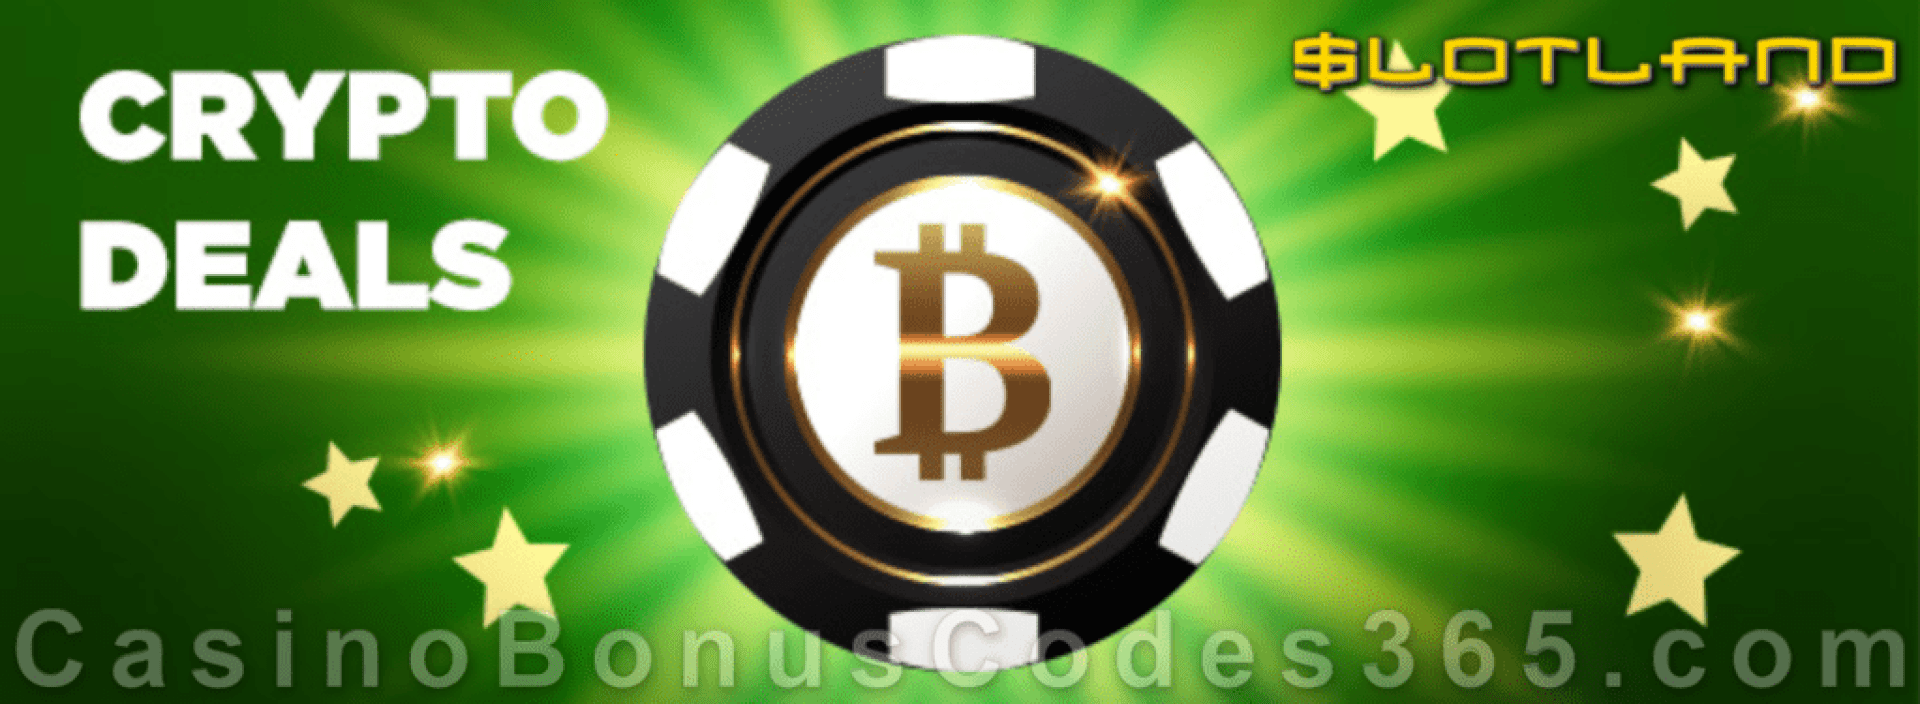 Slotland Casino Crypto Deals